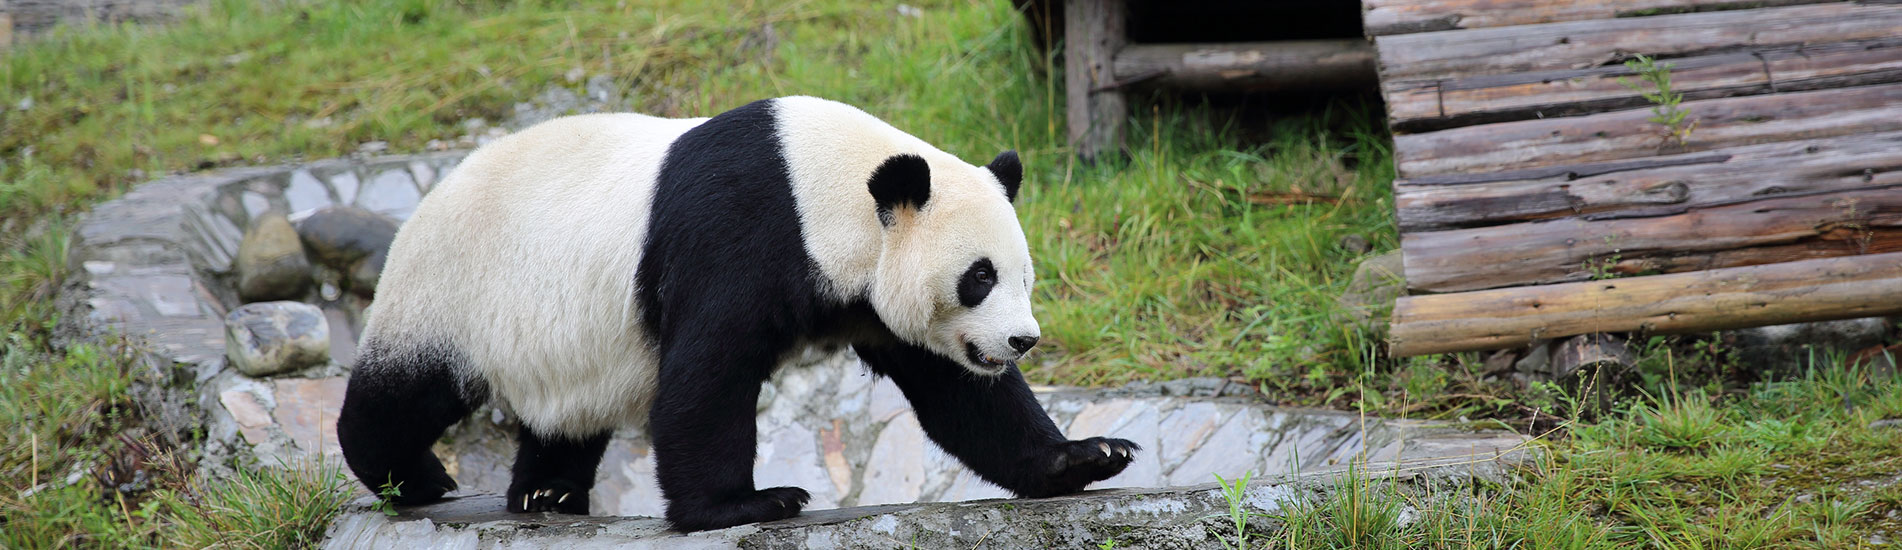 panda in Wolong